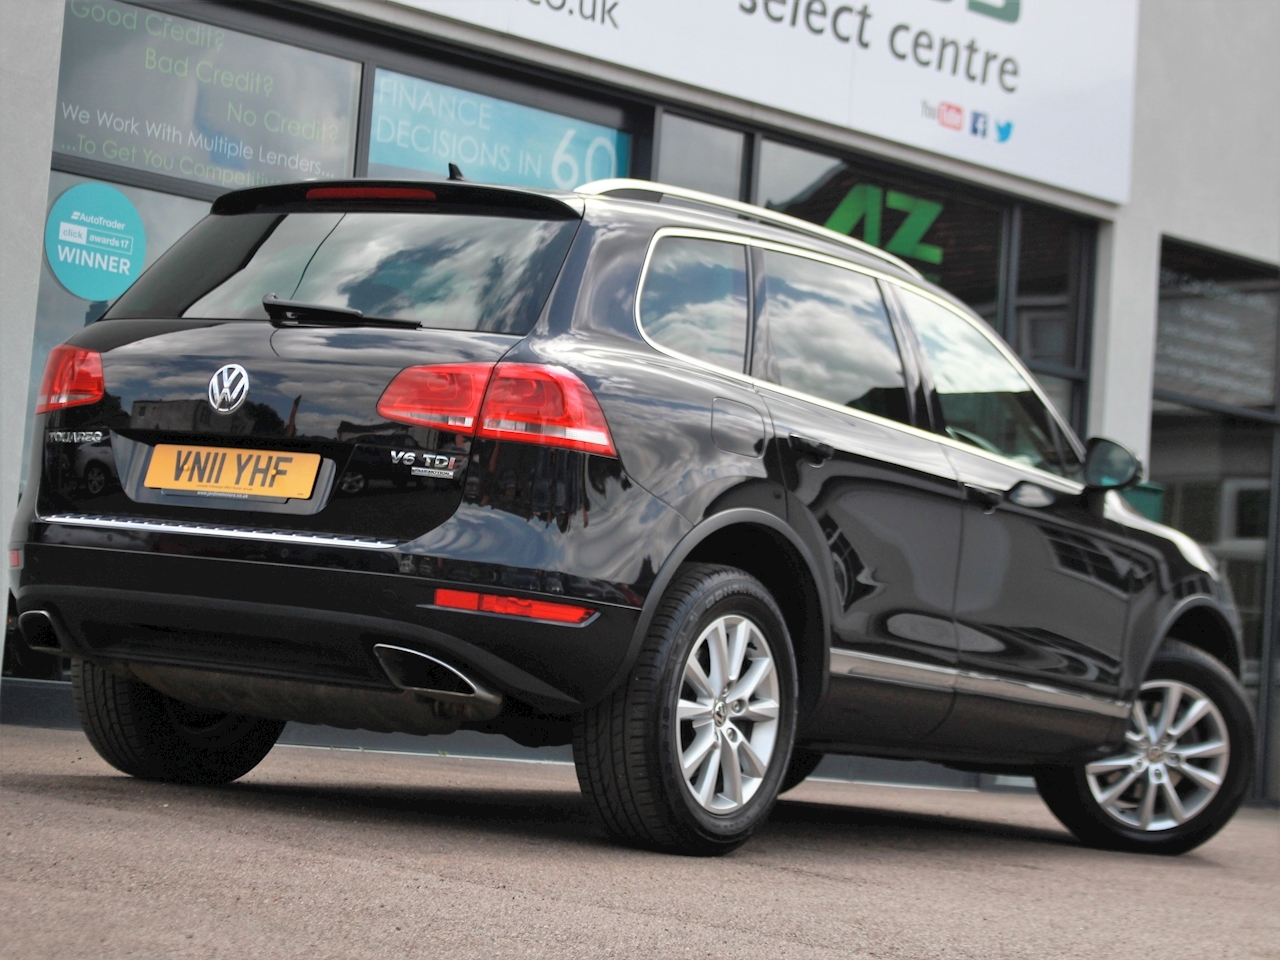 Volkswagen Touareg V6 Se Tdi Bluemotion Technology - Large 4